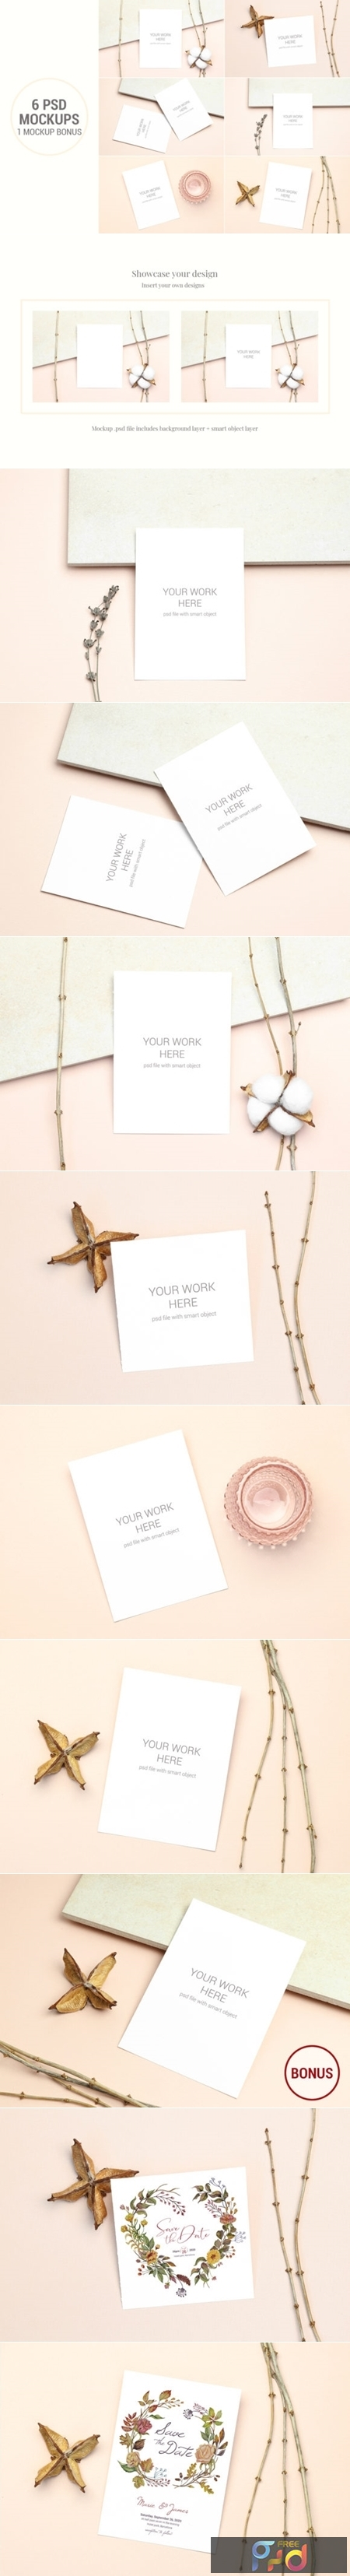 Invitation Card Mockups with Branches 2687097 1